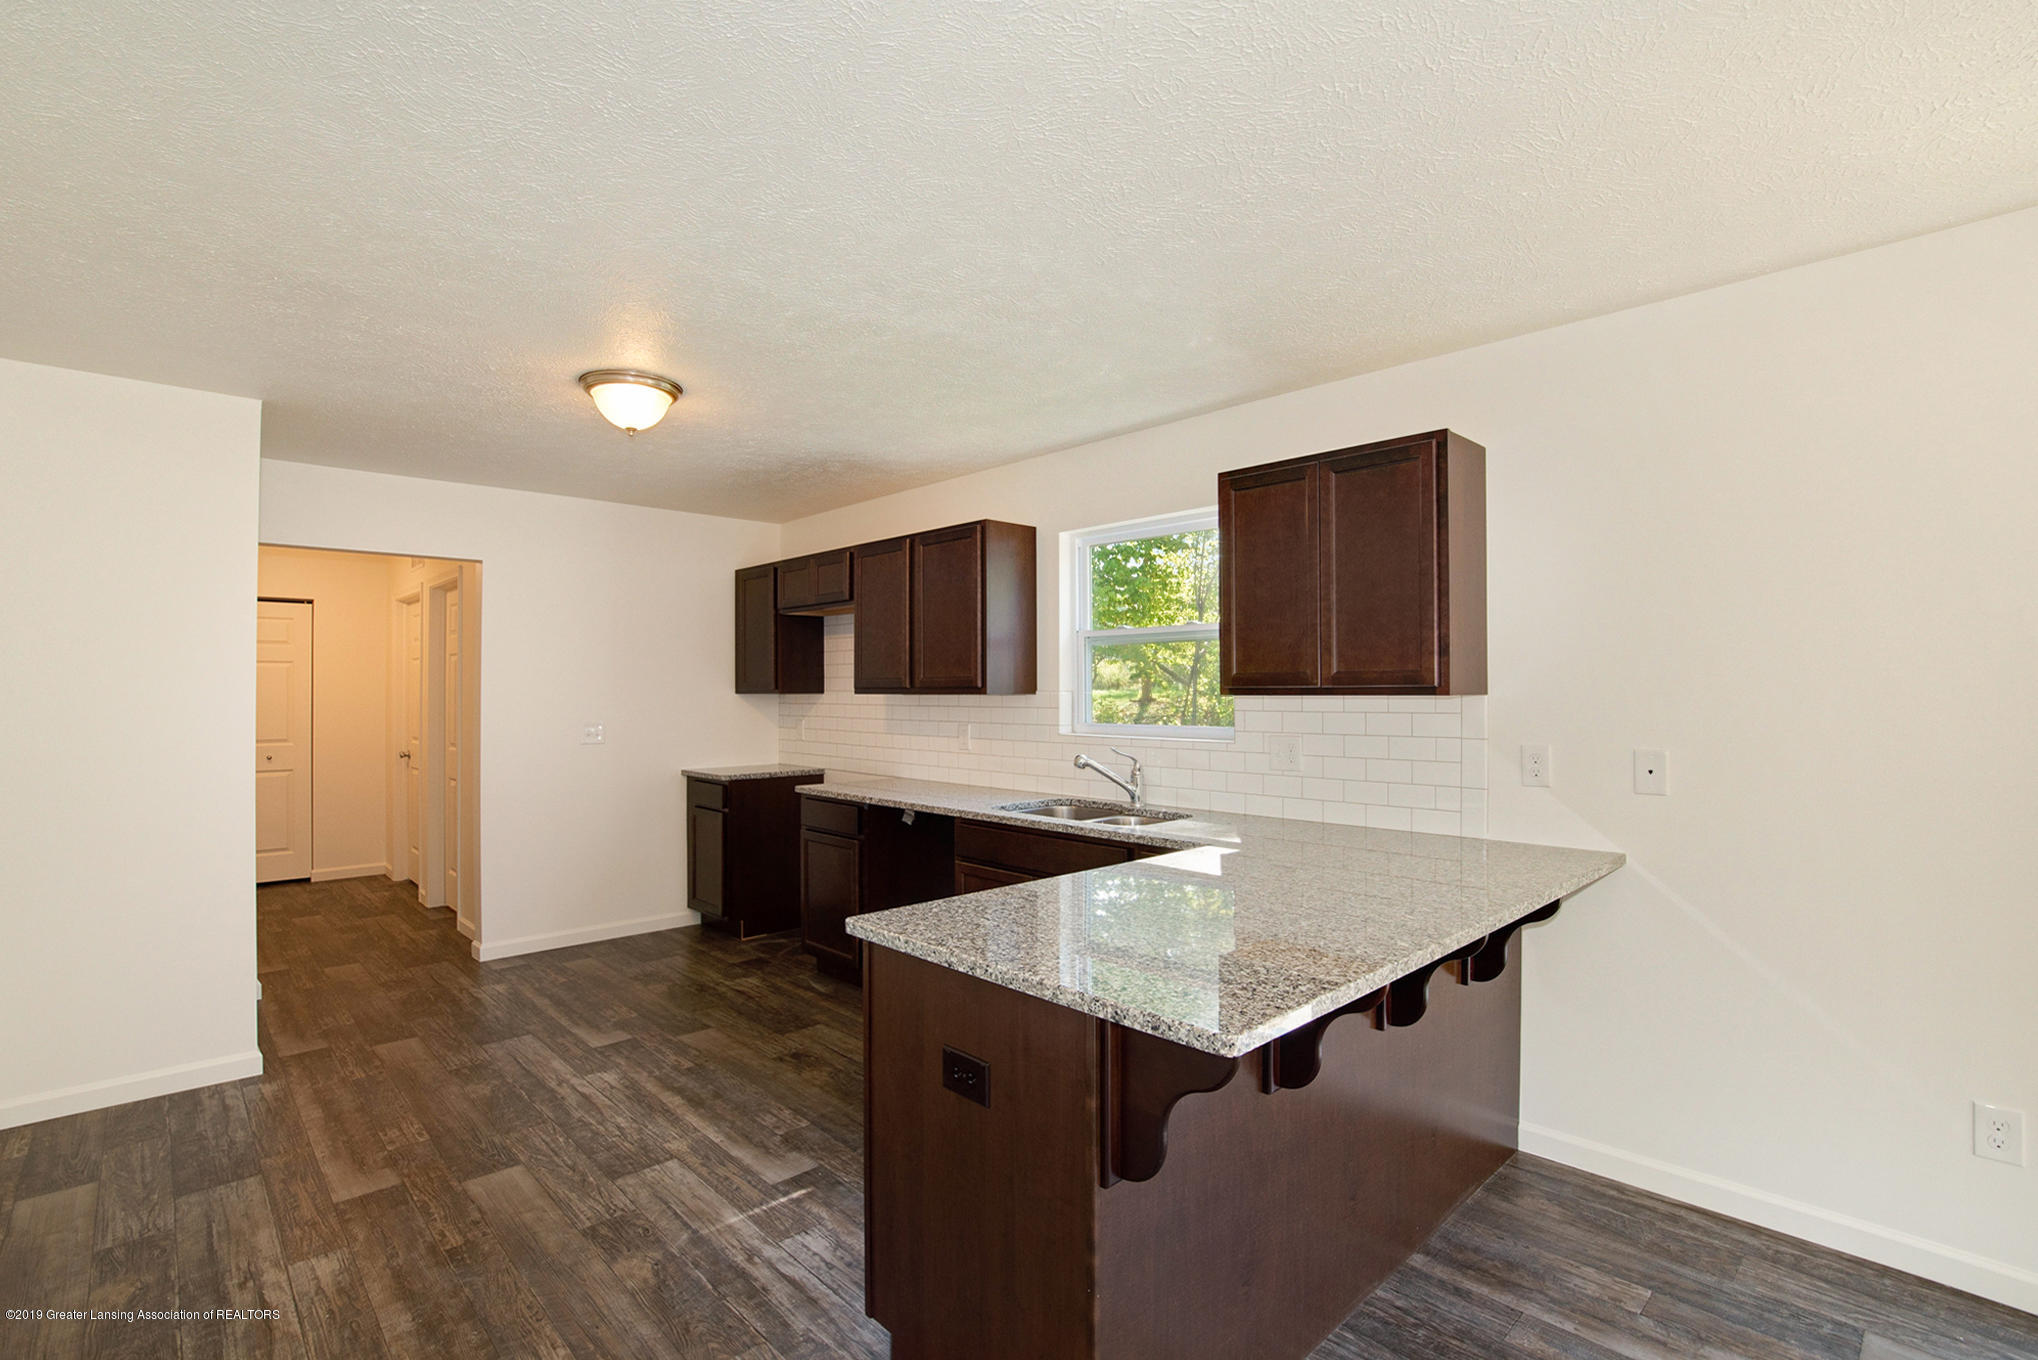 236 Noleigh - OAK079-i1810-Kitchen3 - 6